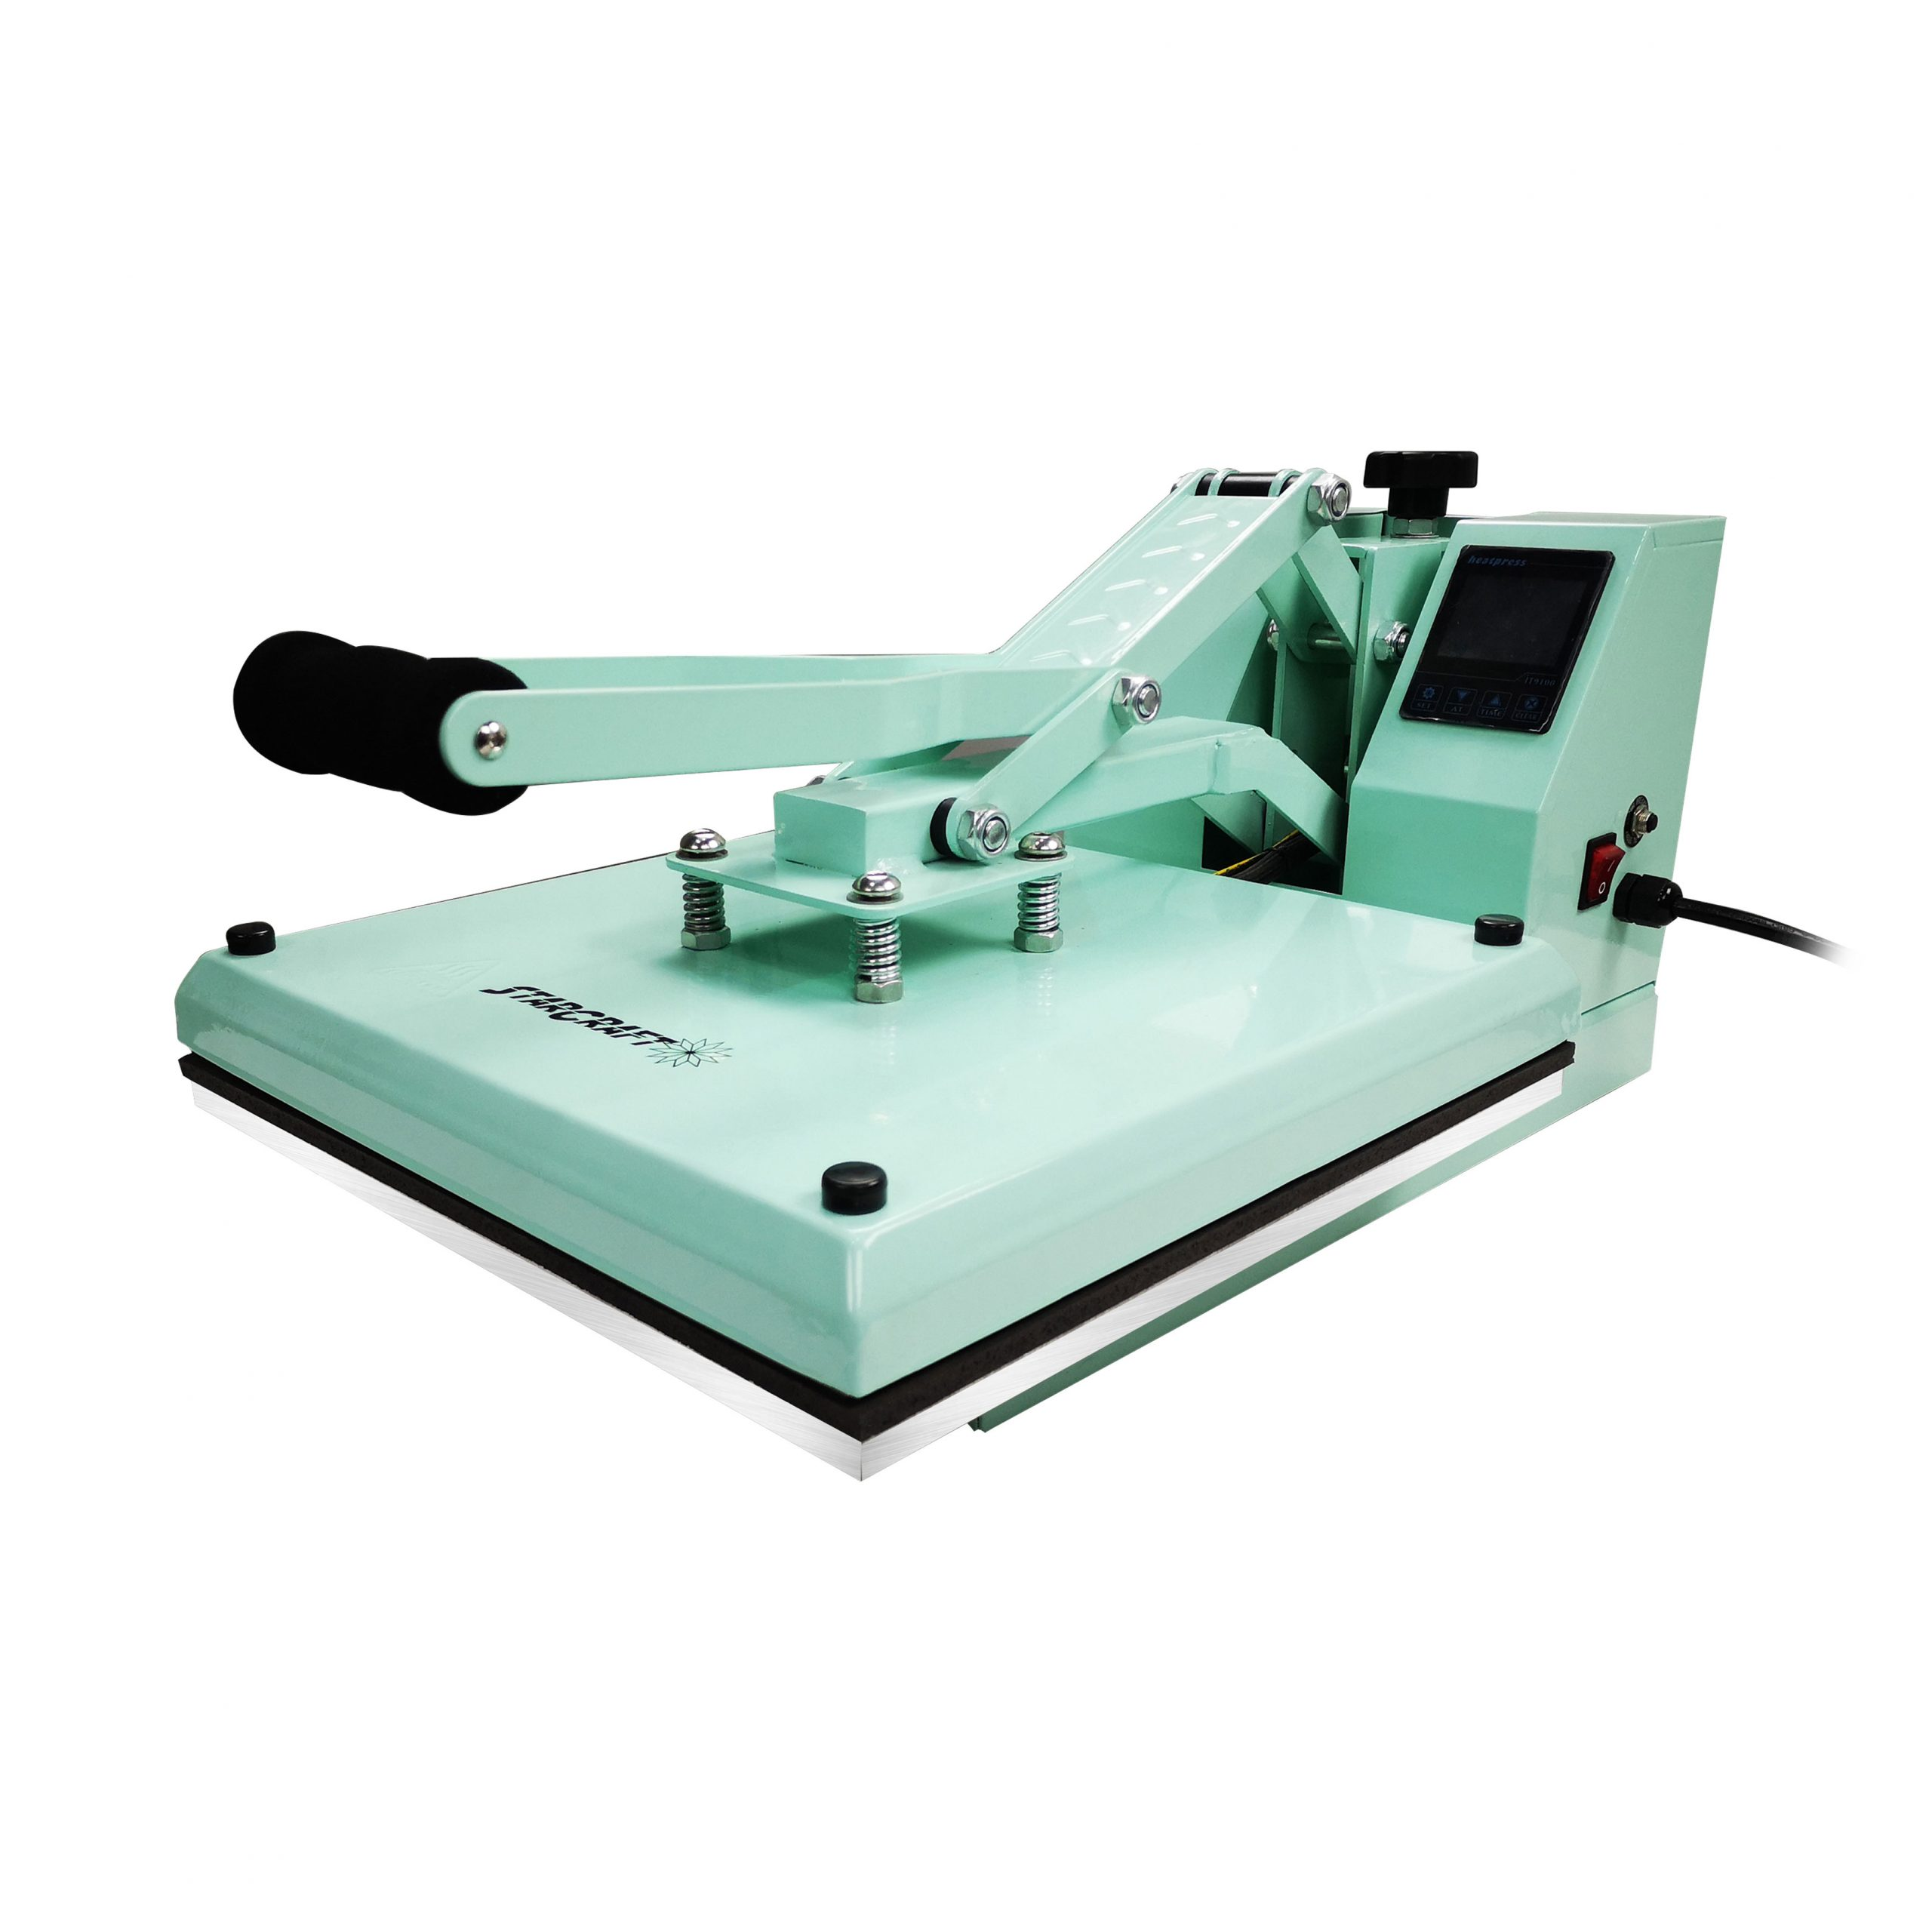 """StarCraft 15"""" x 15"""" Clam Shell Heat Press - Mint - Currently Out of Stock. ETA End of Feb."""